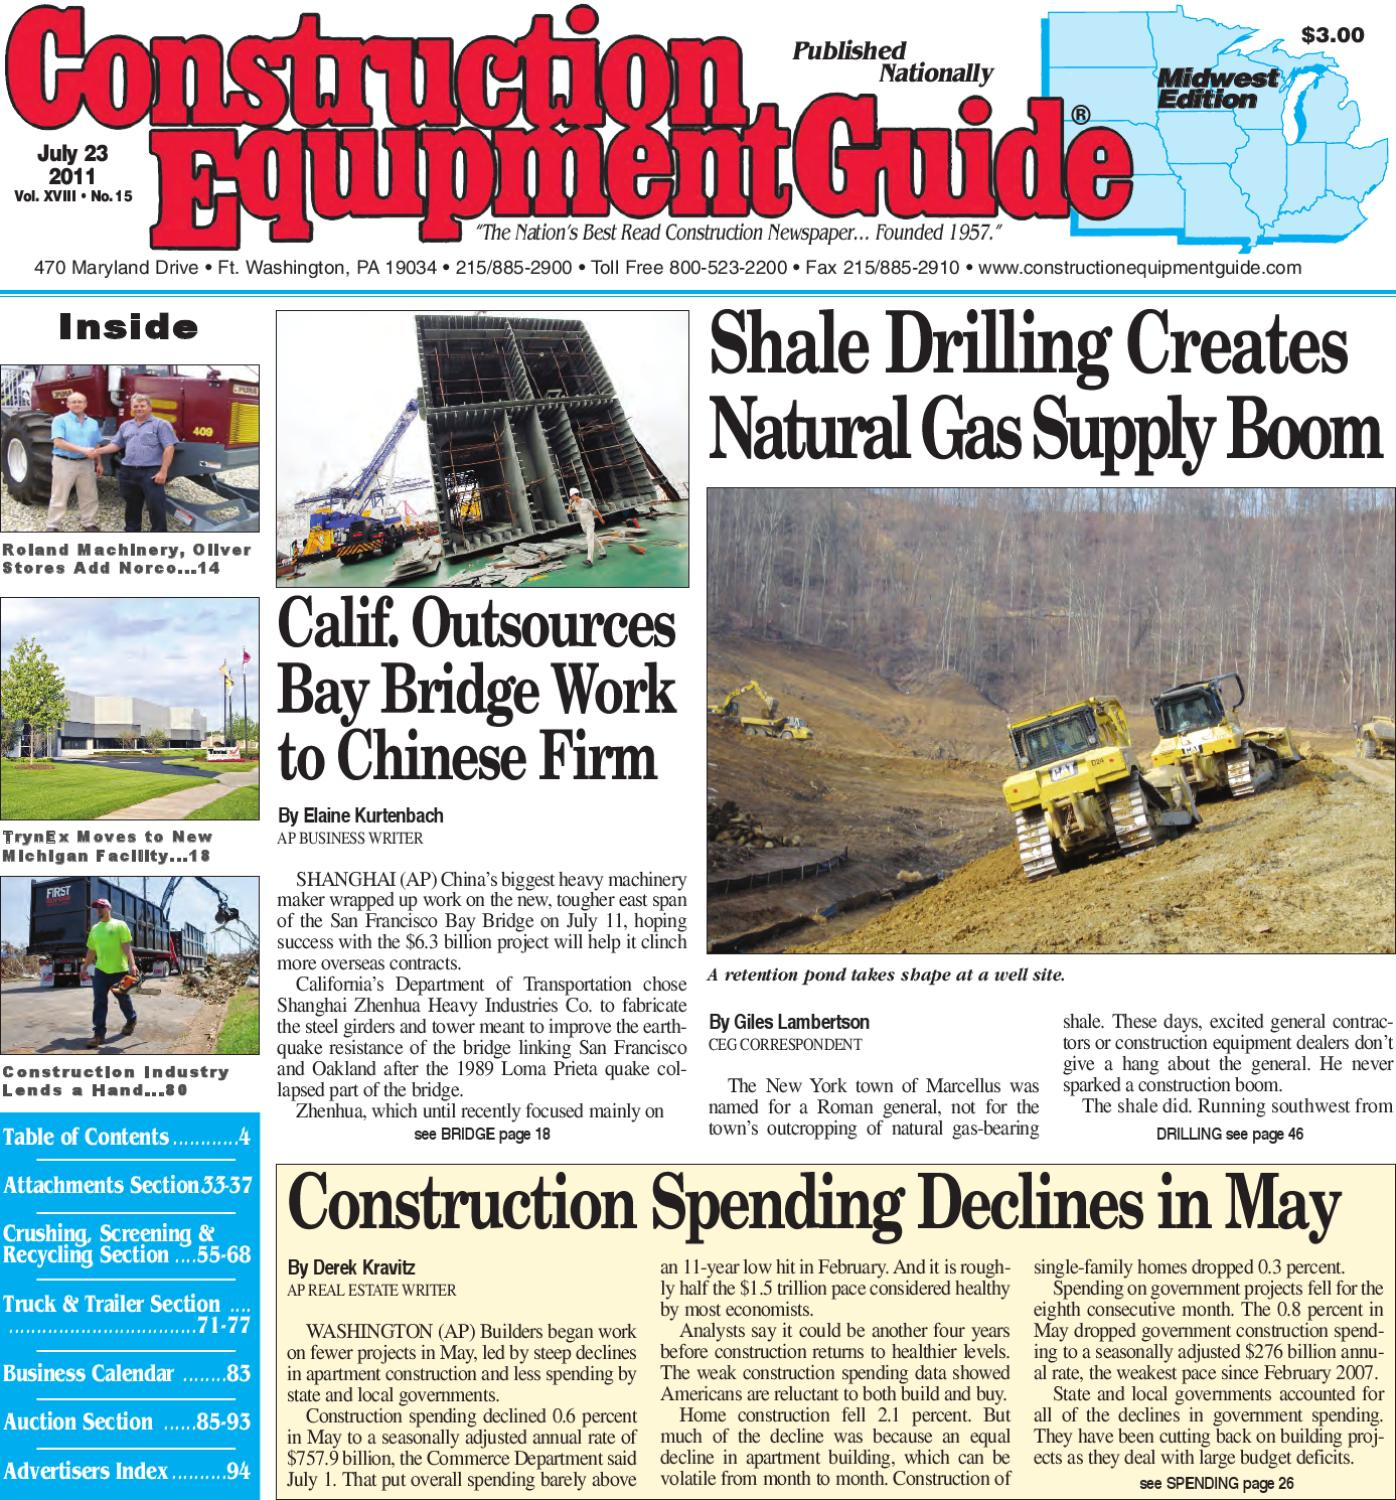 Midwest #15, 2011 by Construction Equipment Guide - issuu